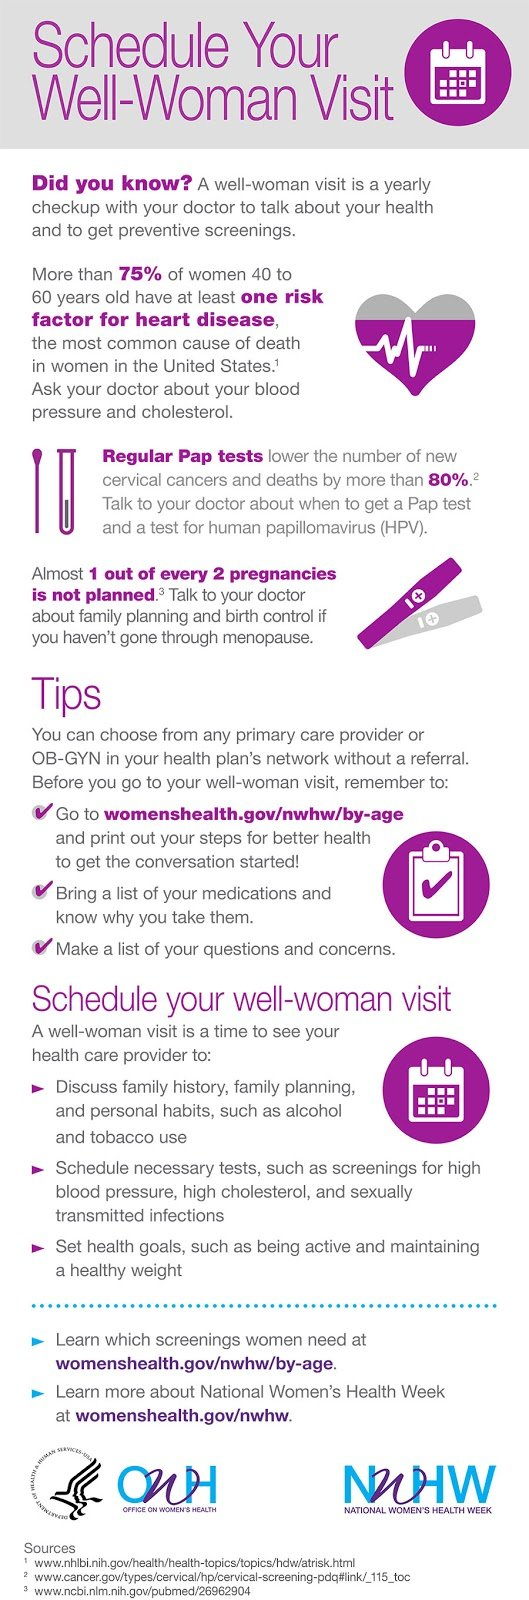 National Women's Health Week - Schedule your Well Woman Visit Infographic